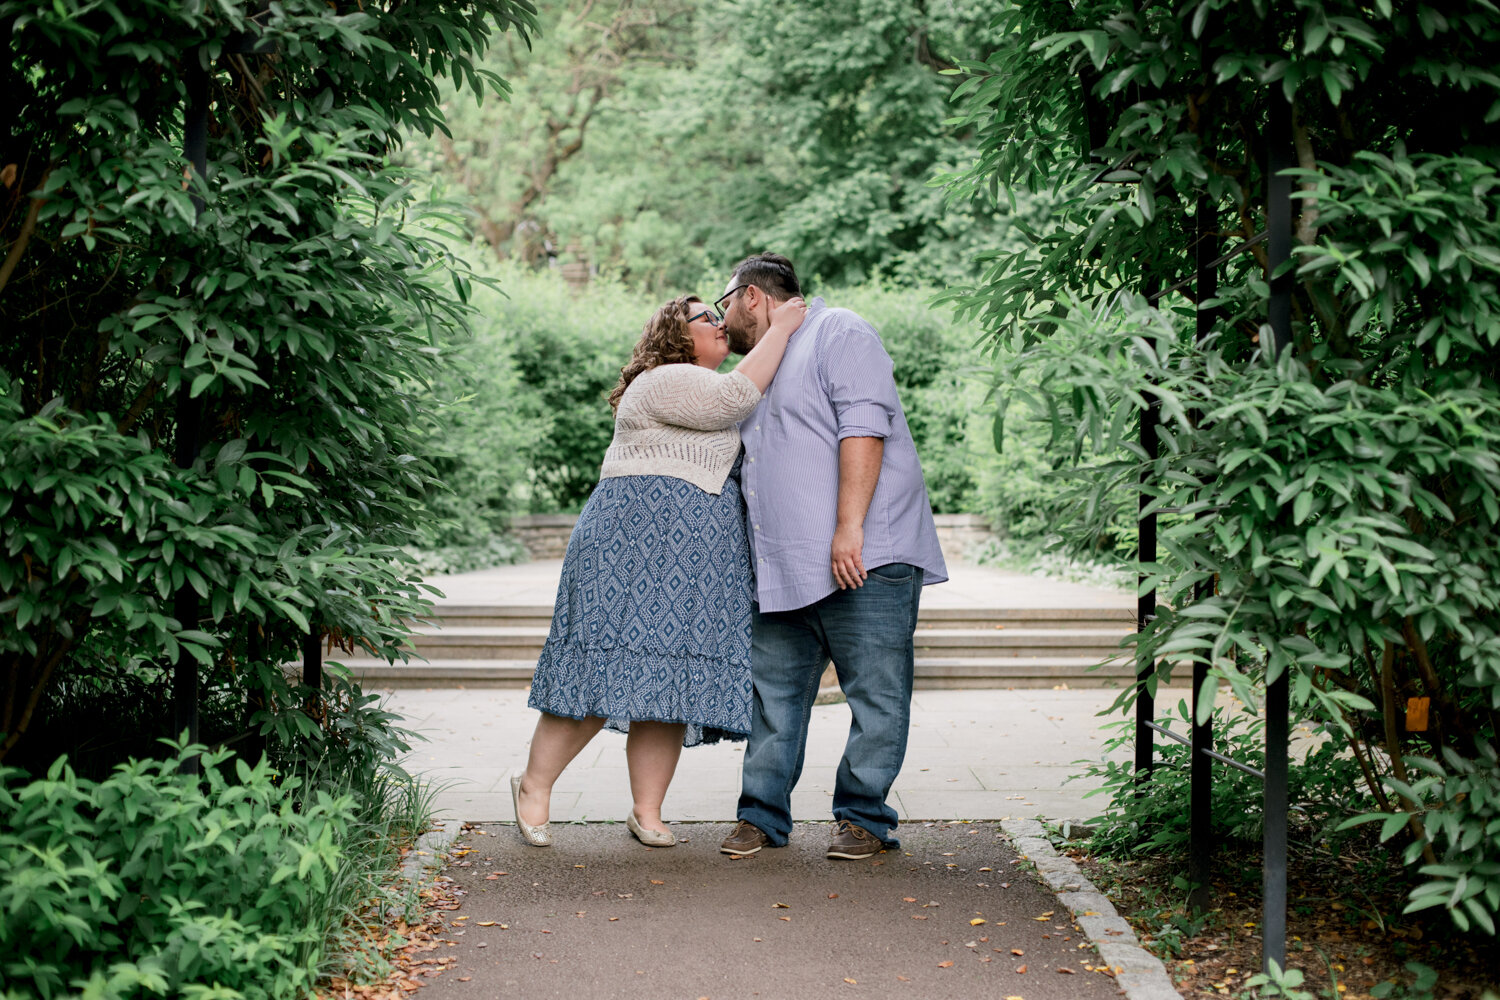 morris-arboretum-chestnut-hill-garden-engagement-session-philadelphia-wedding-photography-6.jpg